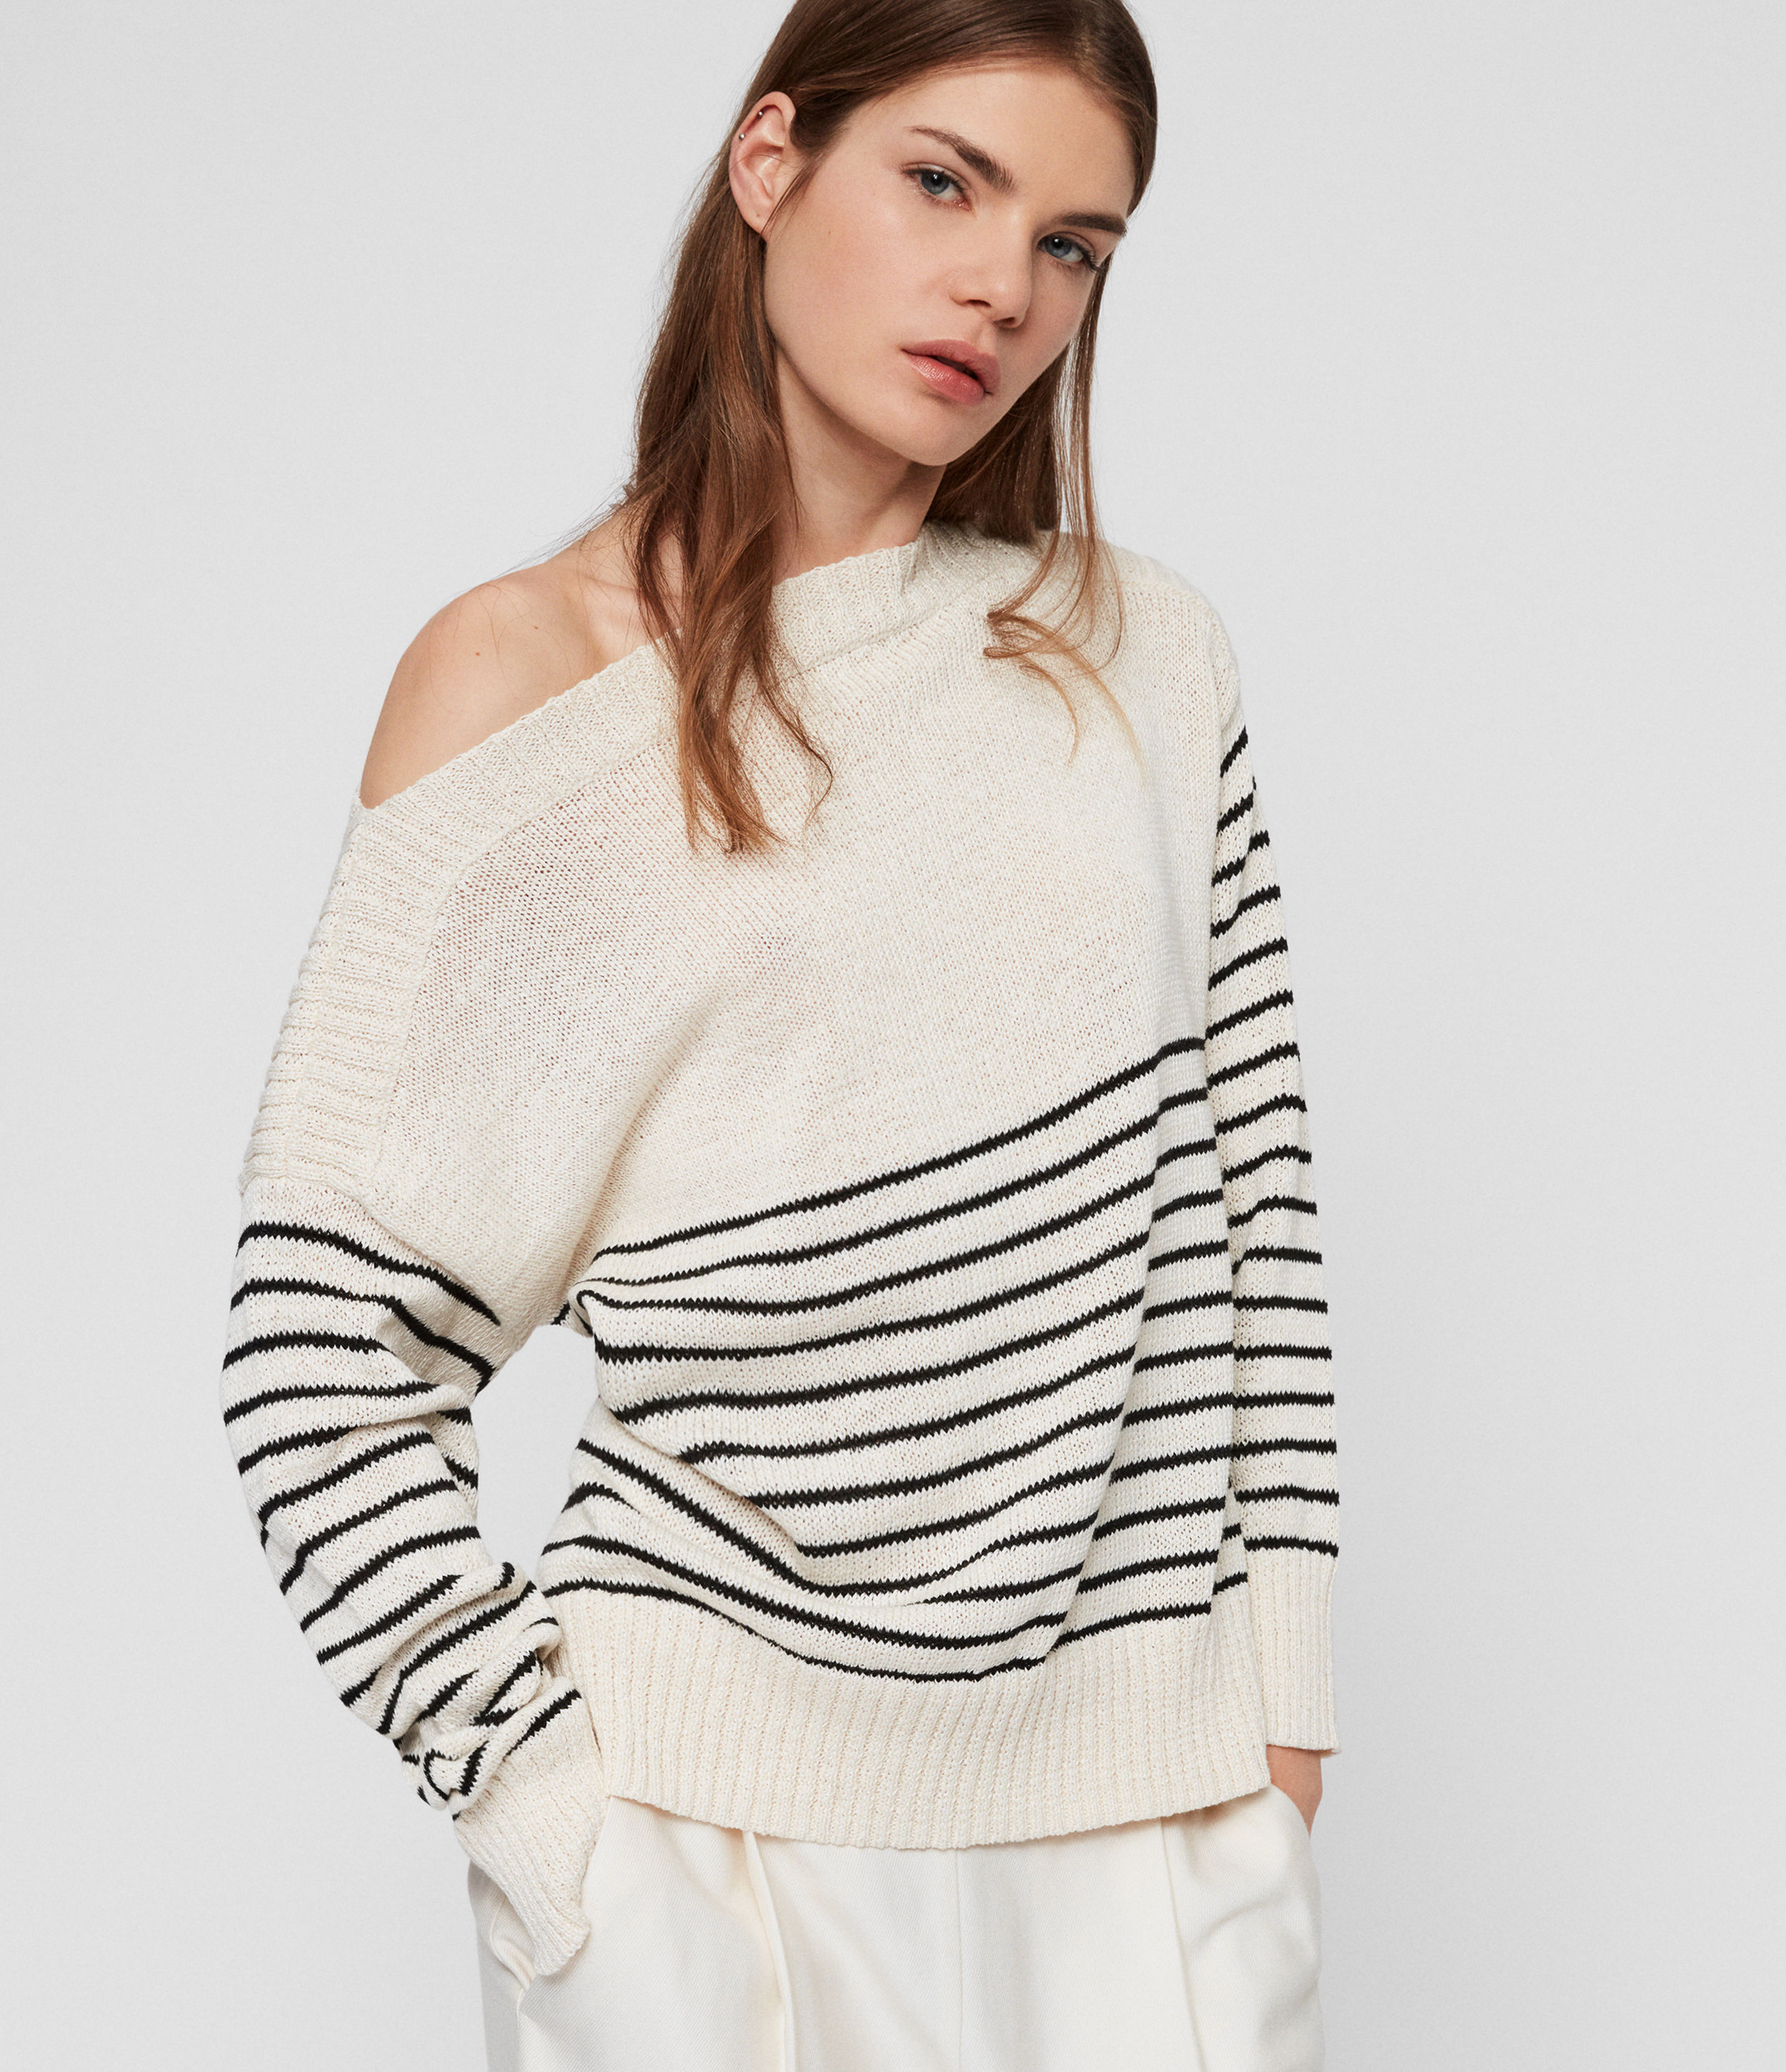 AllSaints Women's Cotton Stripe Lightweight Ives Breton Jumper, White and Black, Size: M